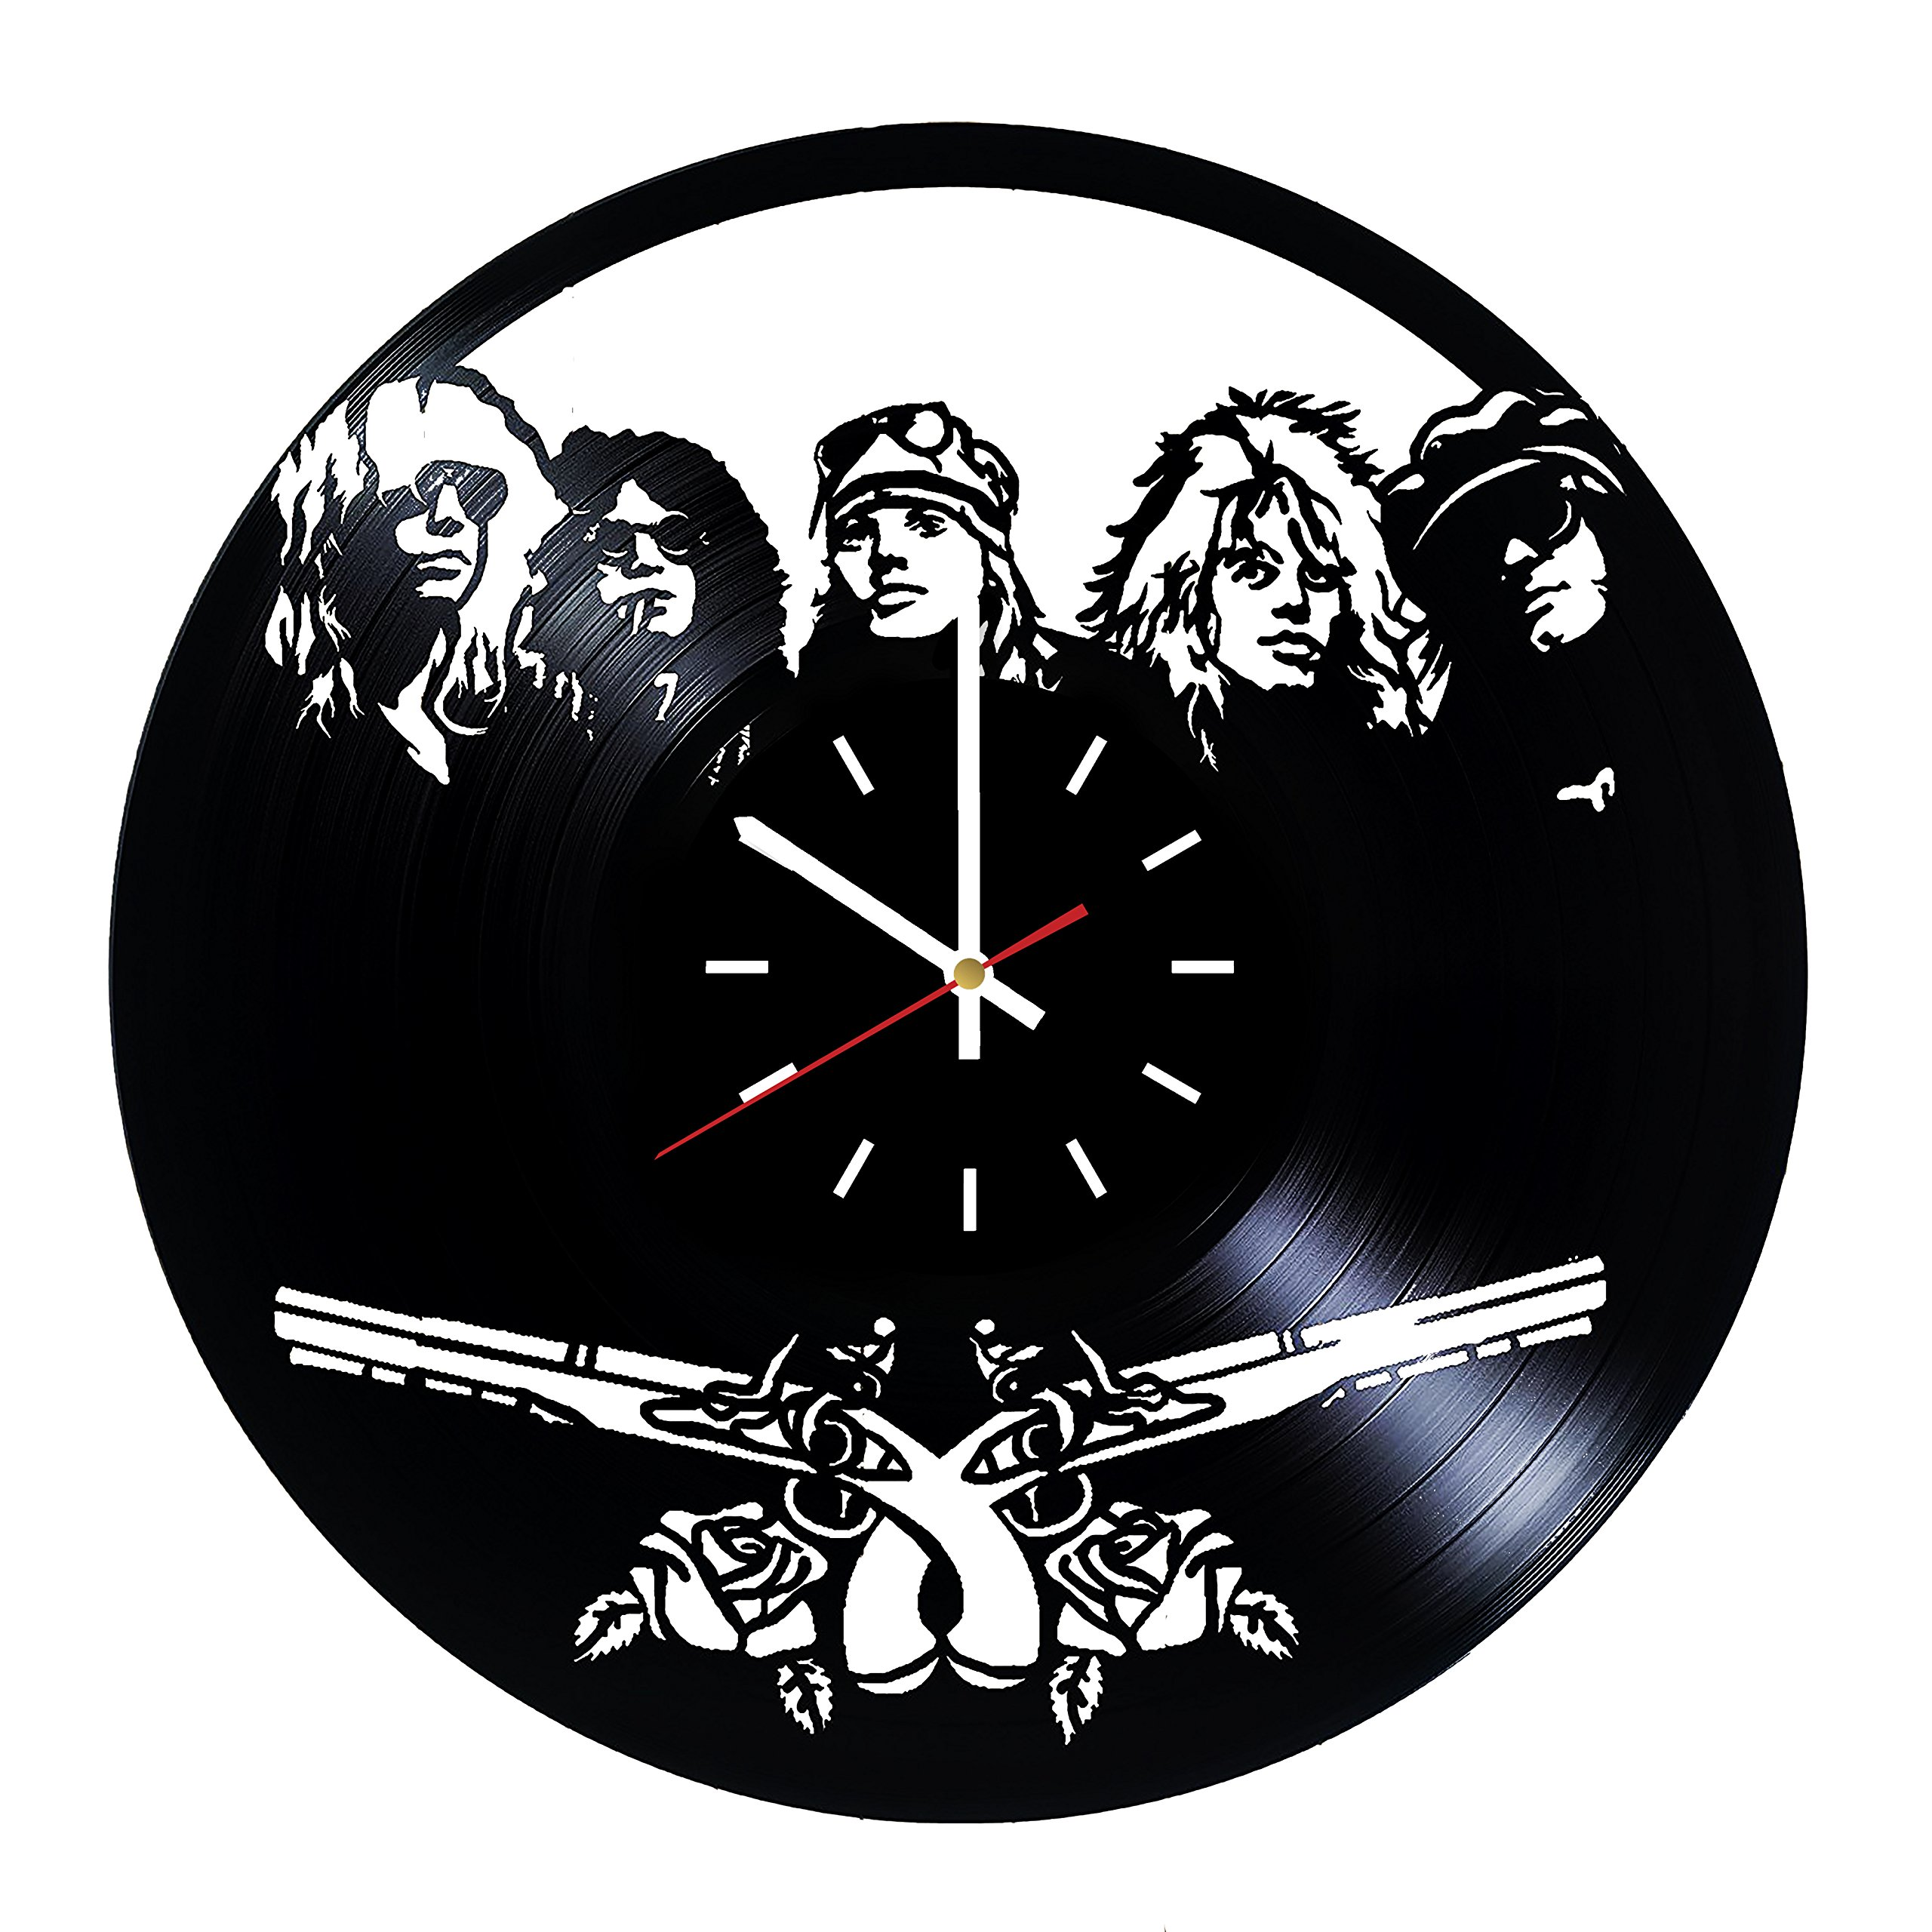 Everyday Arts Guns N' Roses American Hard Rock Band Design Vinyl Record Wall Clock - Get Unique Bedroom or Garage Wall Decor - Gift Ideas for Friends, Brother - Darth Vader Unique Modern Art